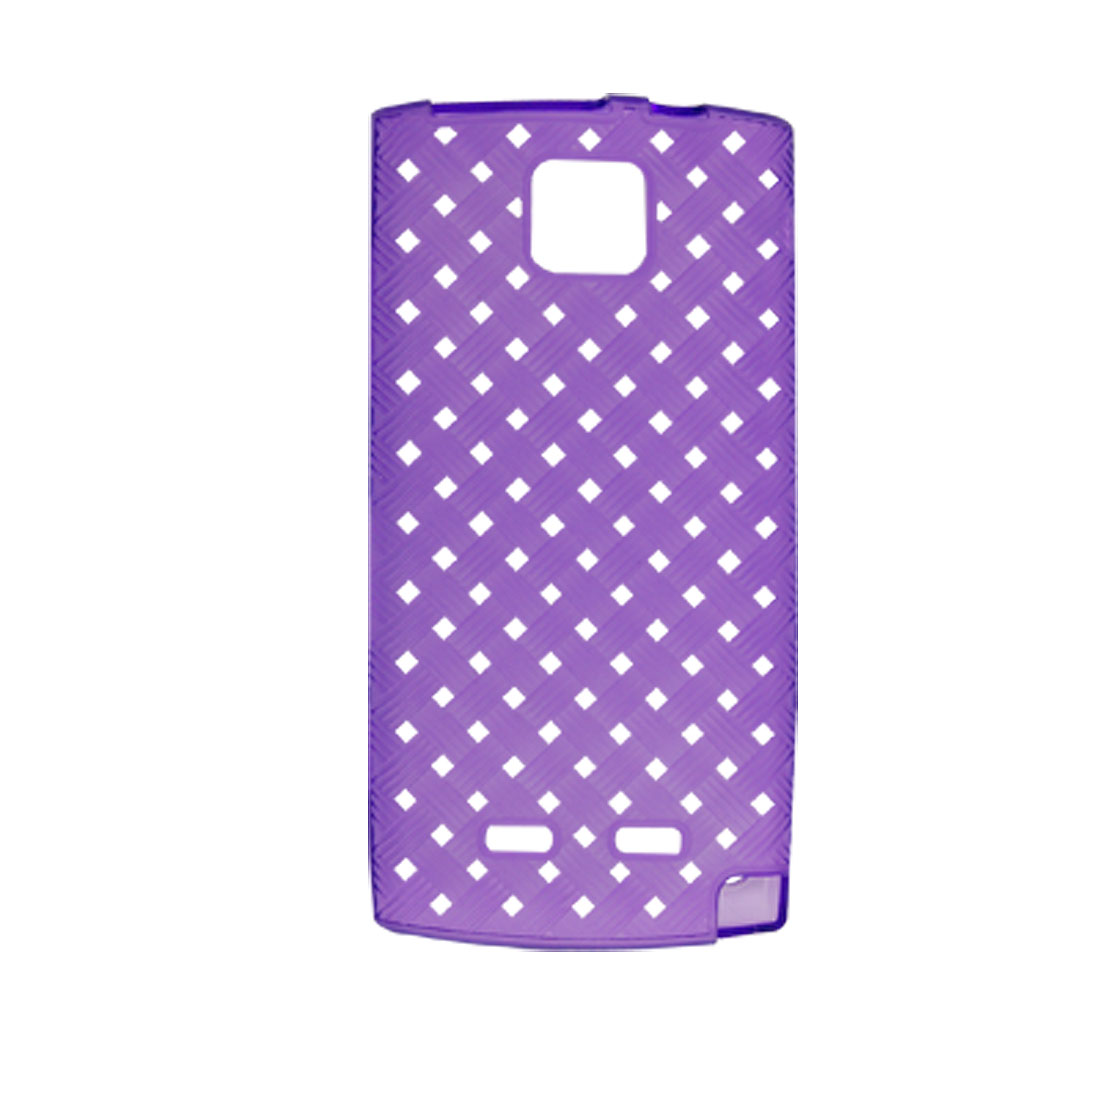 Protective Soft Plastic Weave Style Cover Purple for Nokia 5250